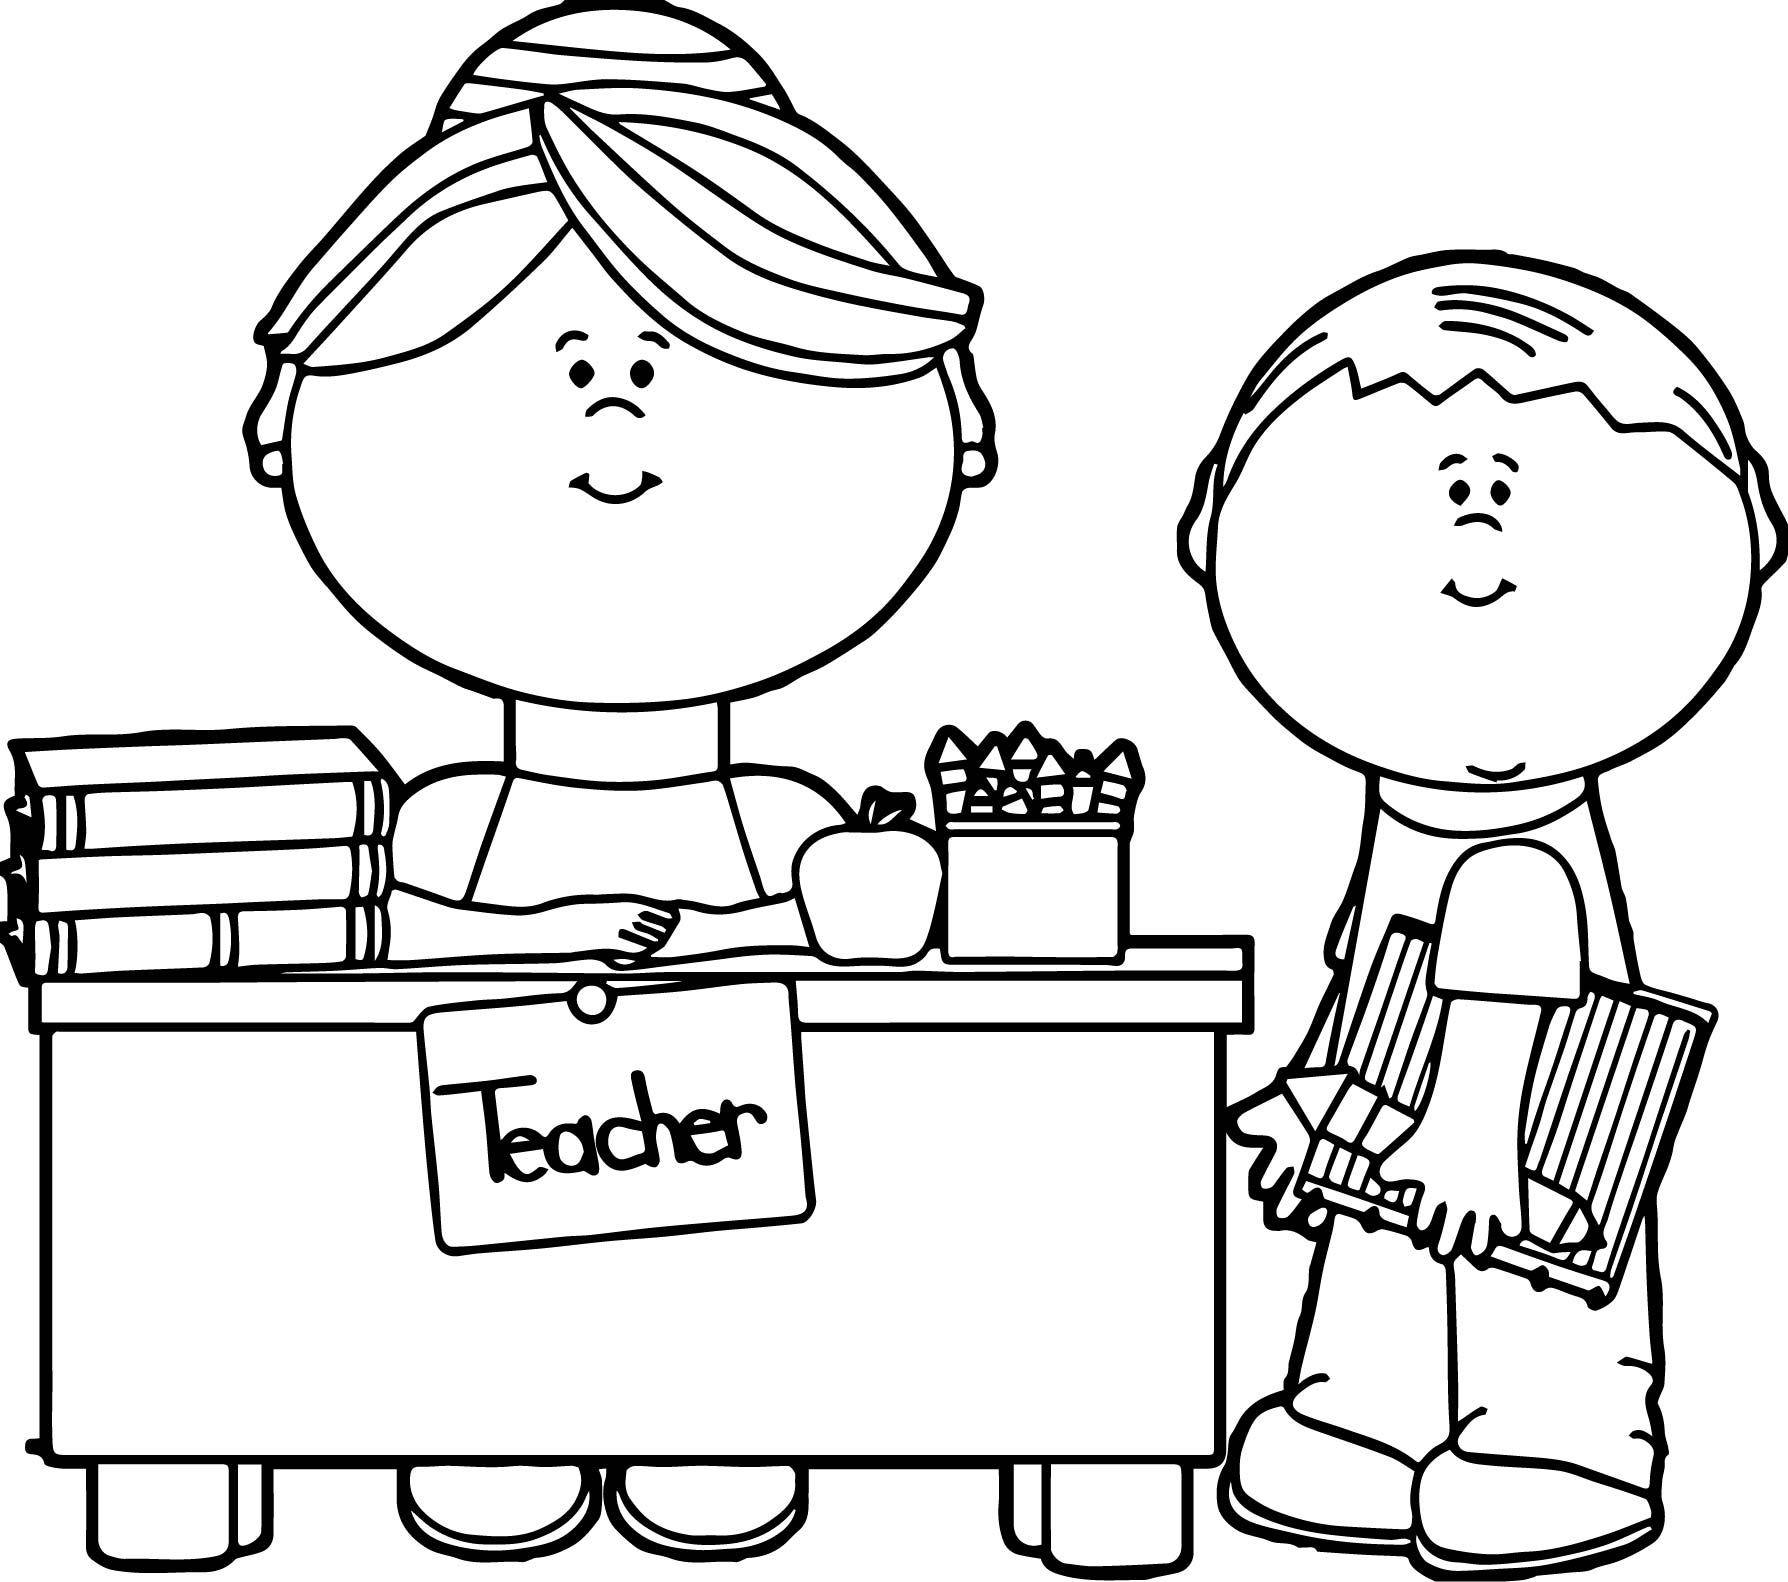 coloring pages of teachers - photo#31